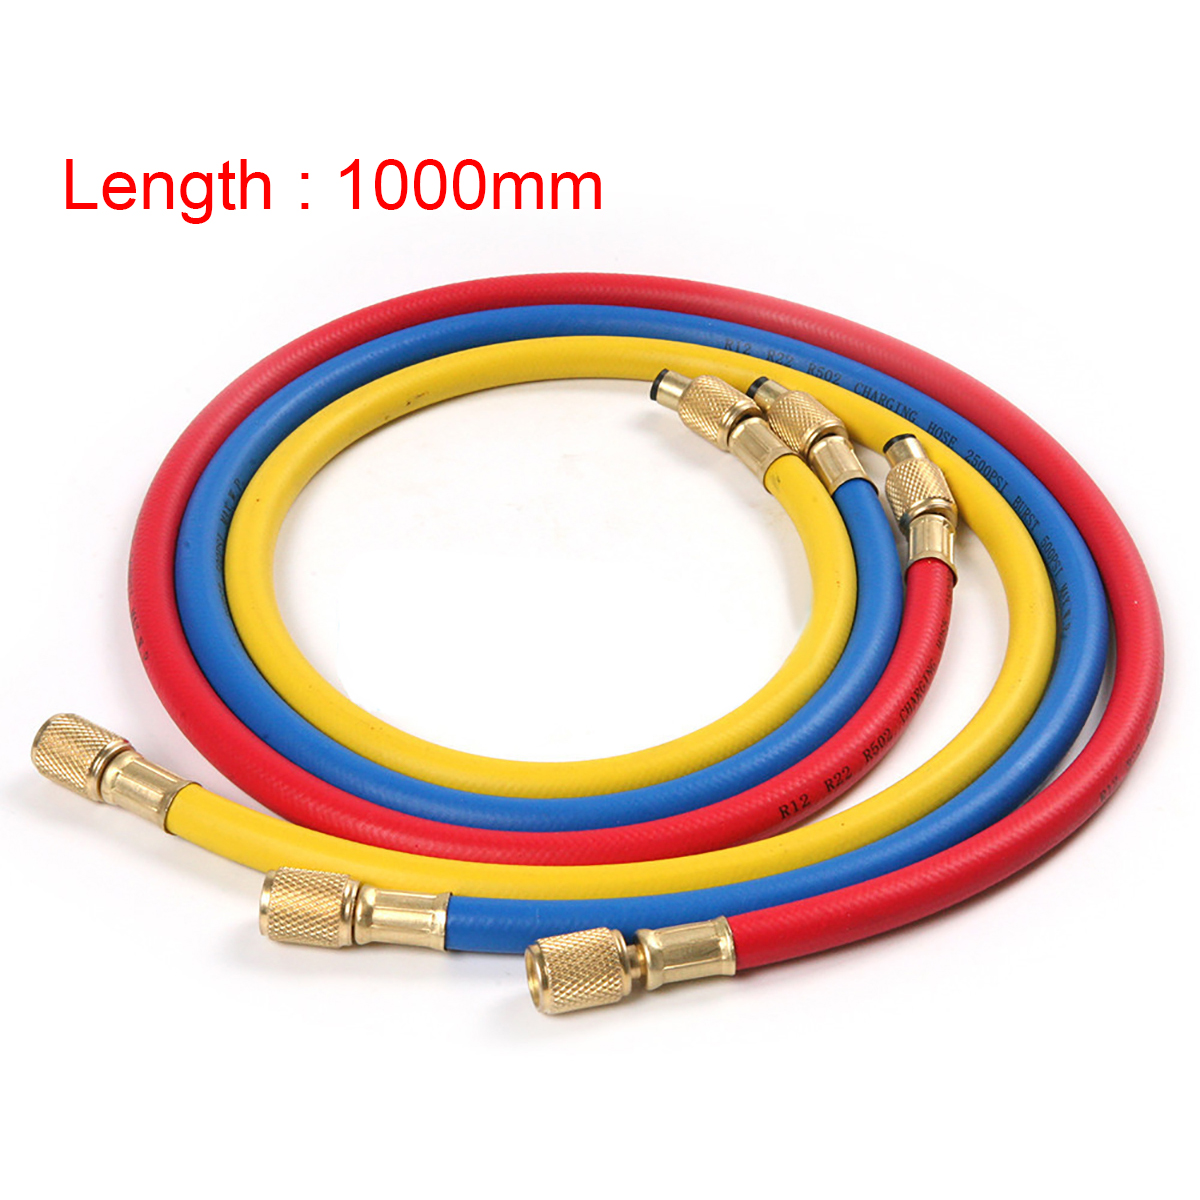 3pcs Refrigeration Charging Hose Practical High Pressure Automobile Air Conditioner Hose For Car R12 R22 R502 Refrigerant Mayitr 3pcs lot new r410 r22 air refrigeration charging adapter refrigerant retention control valve air conditioning charging valve